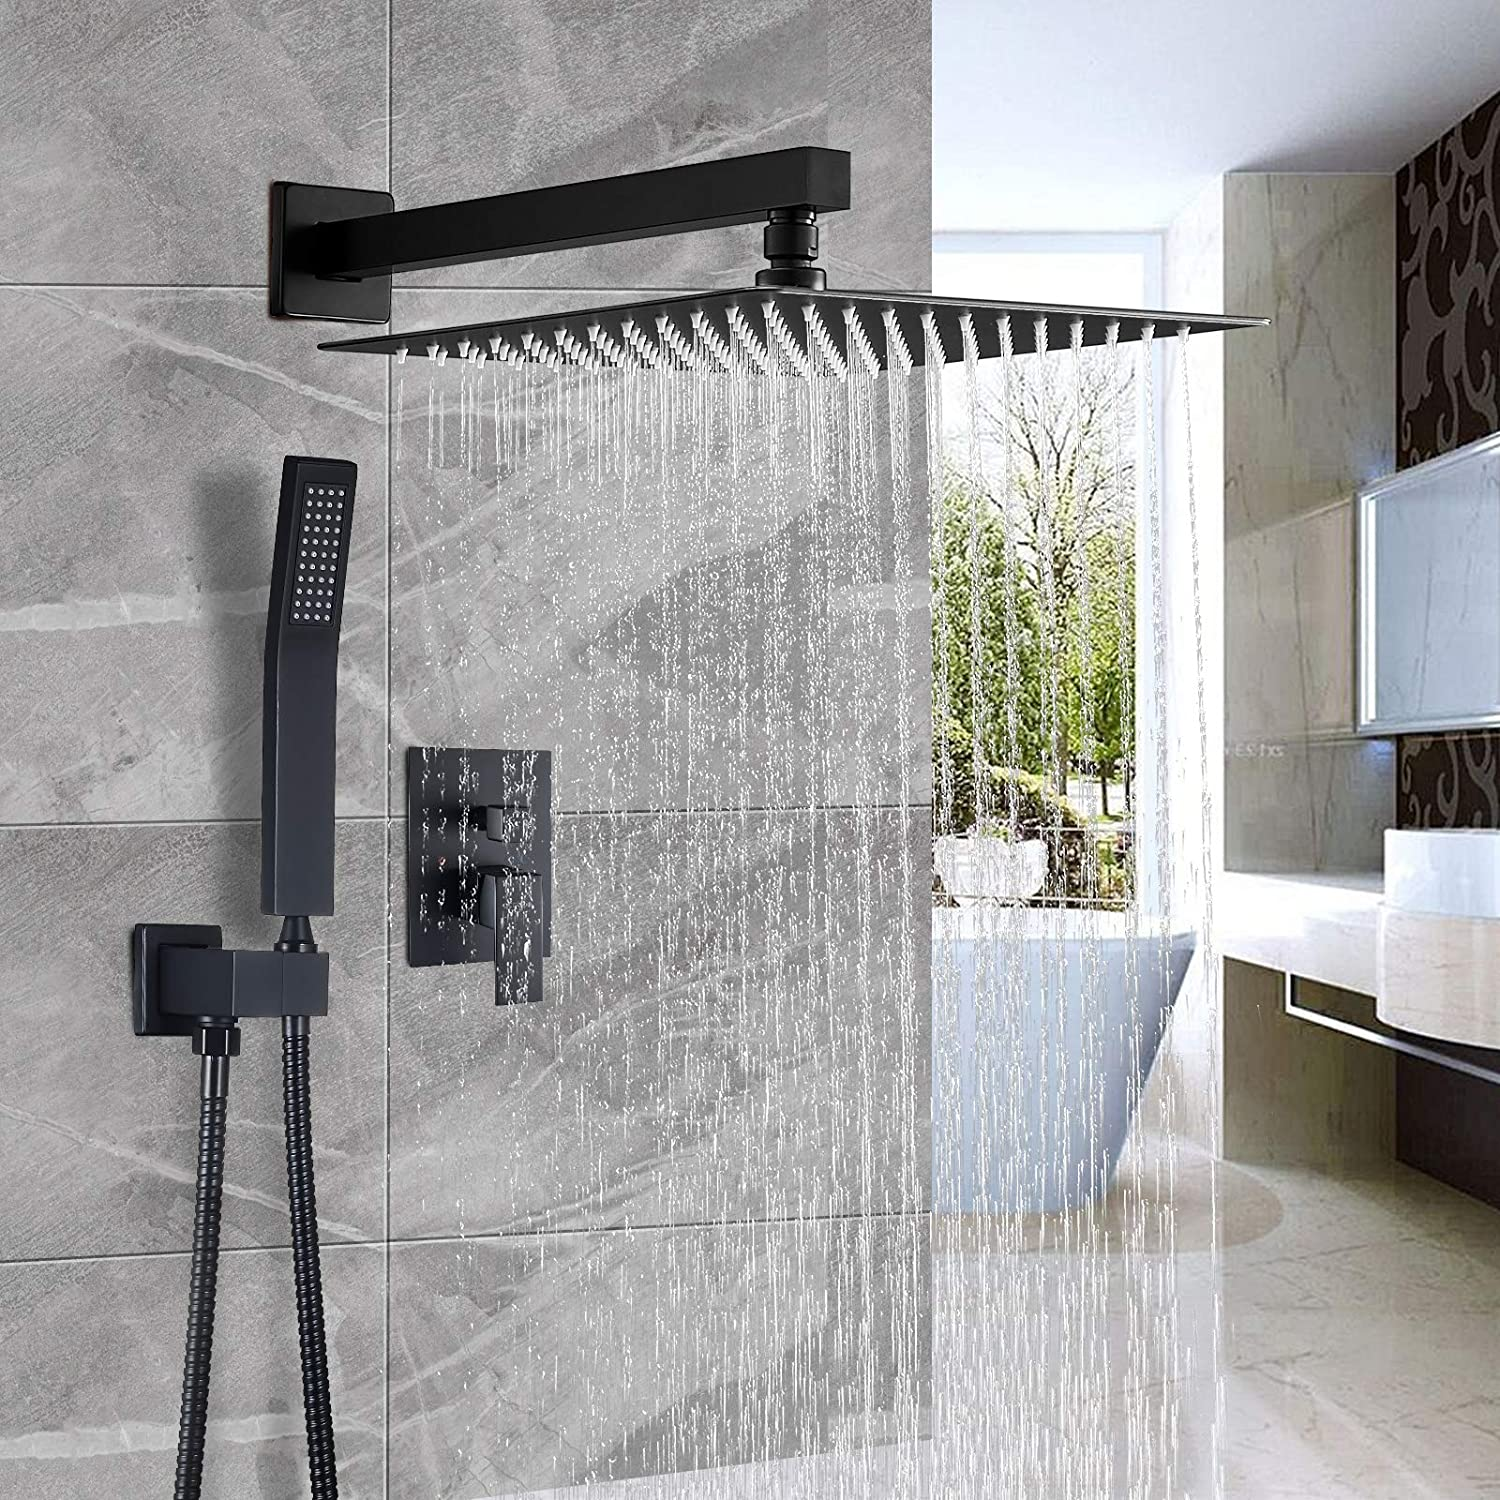 Shower Faucet Set for Bathroom Rough-in Valve Body and Trim Included Chrome Cobbe Shower System,Shower Faucets Sets Complete,12 inches Rainfall Shower Head with Handheld